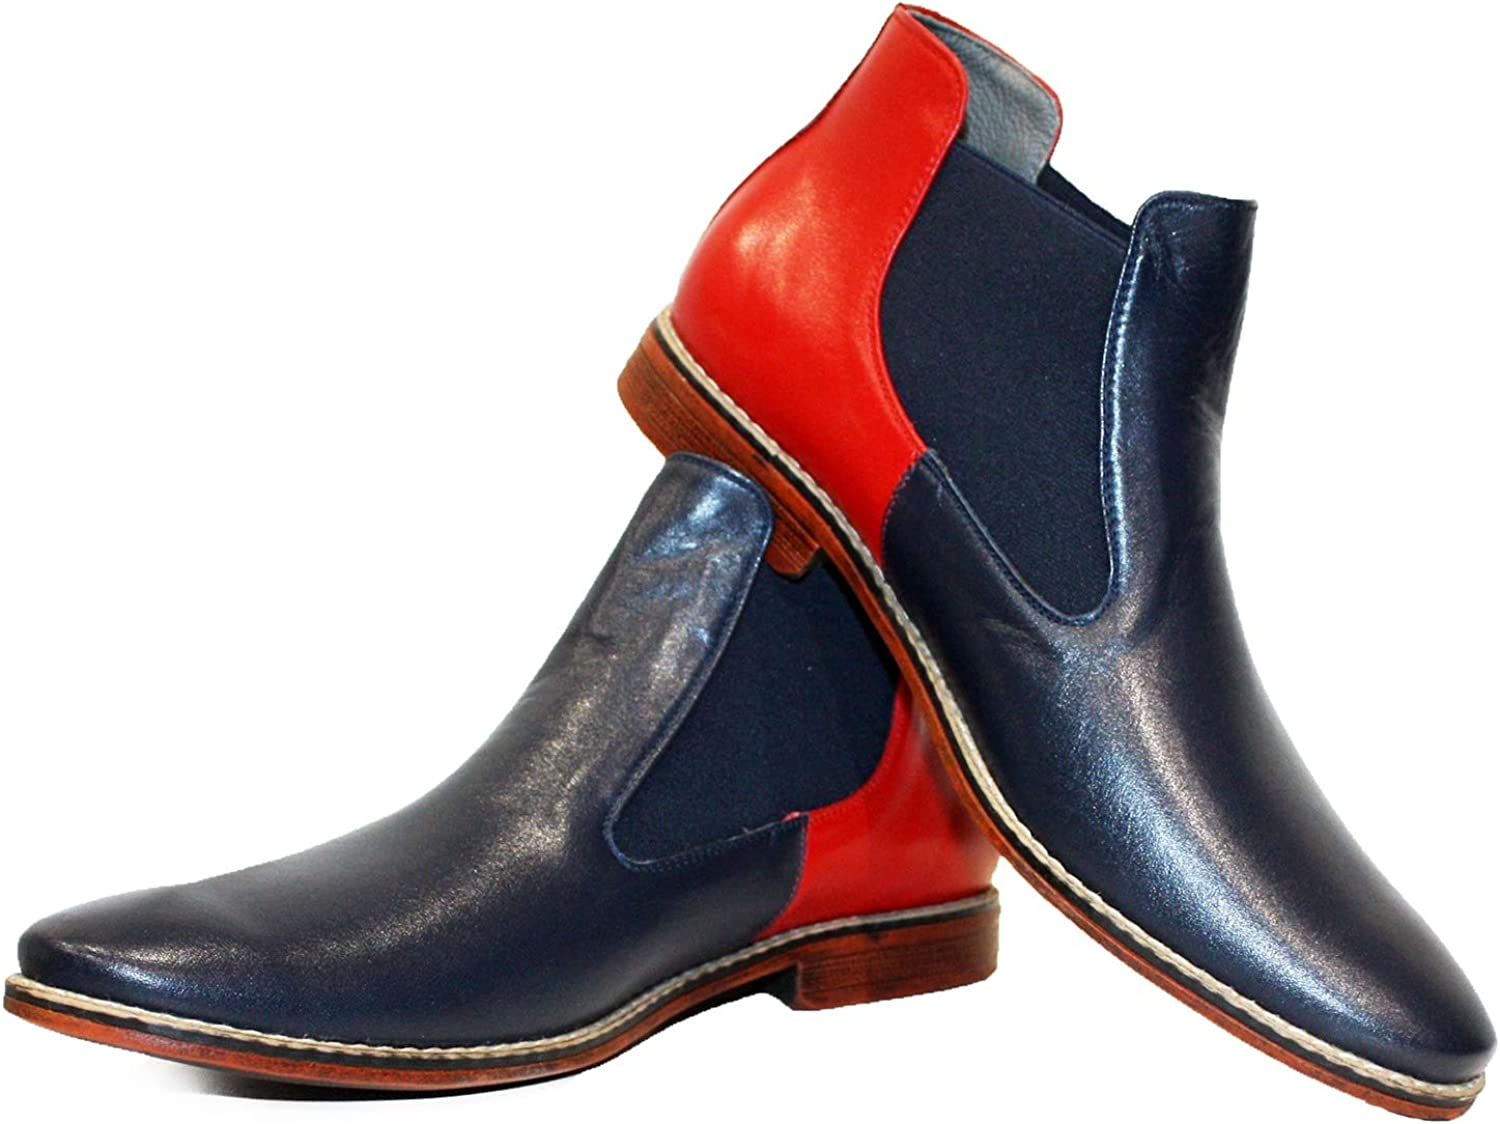 Peppeshoes Modello Rtena - Handmade Italian Leather Mens color Red Ankle Chelsea Boots - Cowhide Smooth Leather - Slip-On